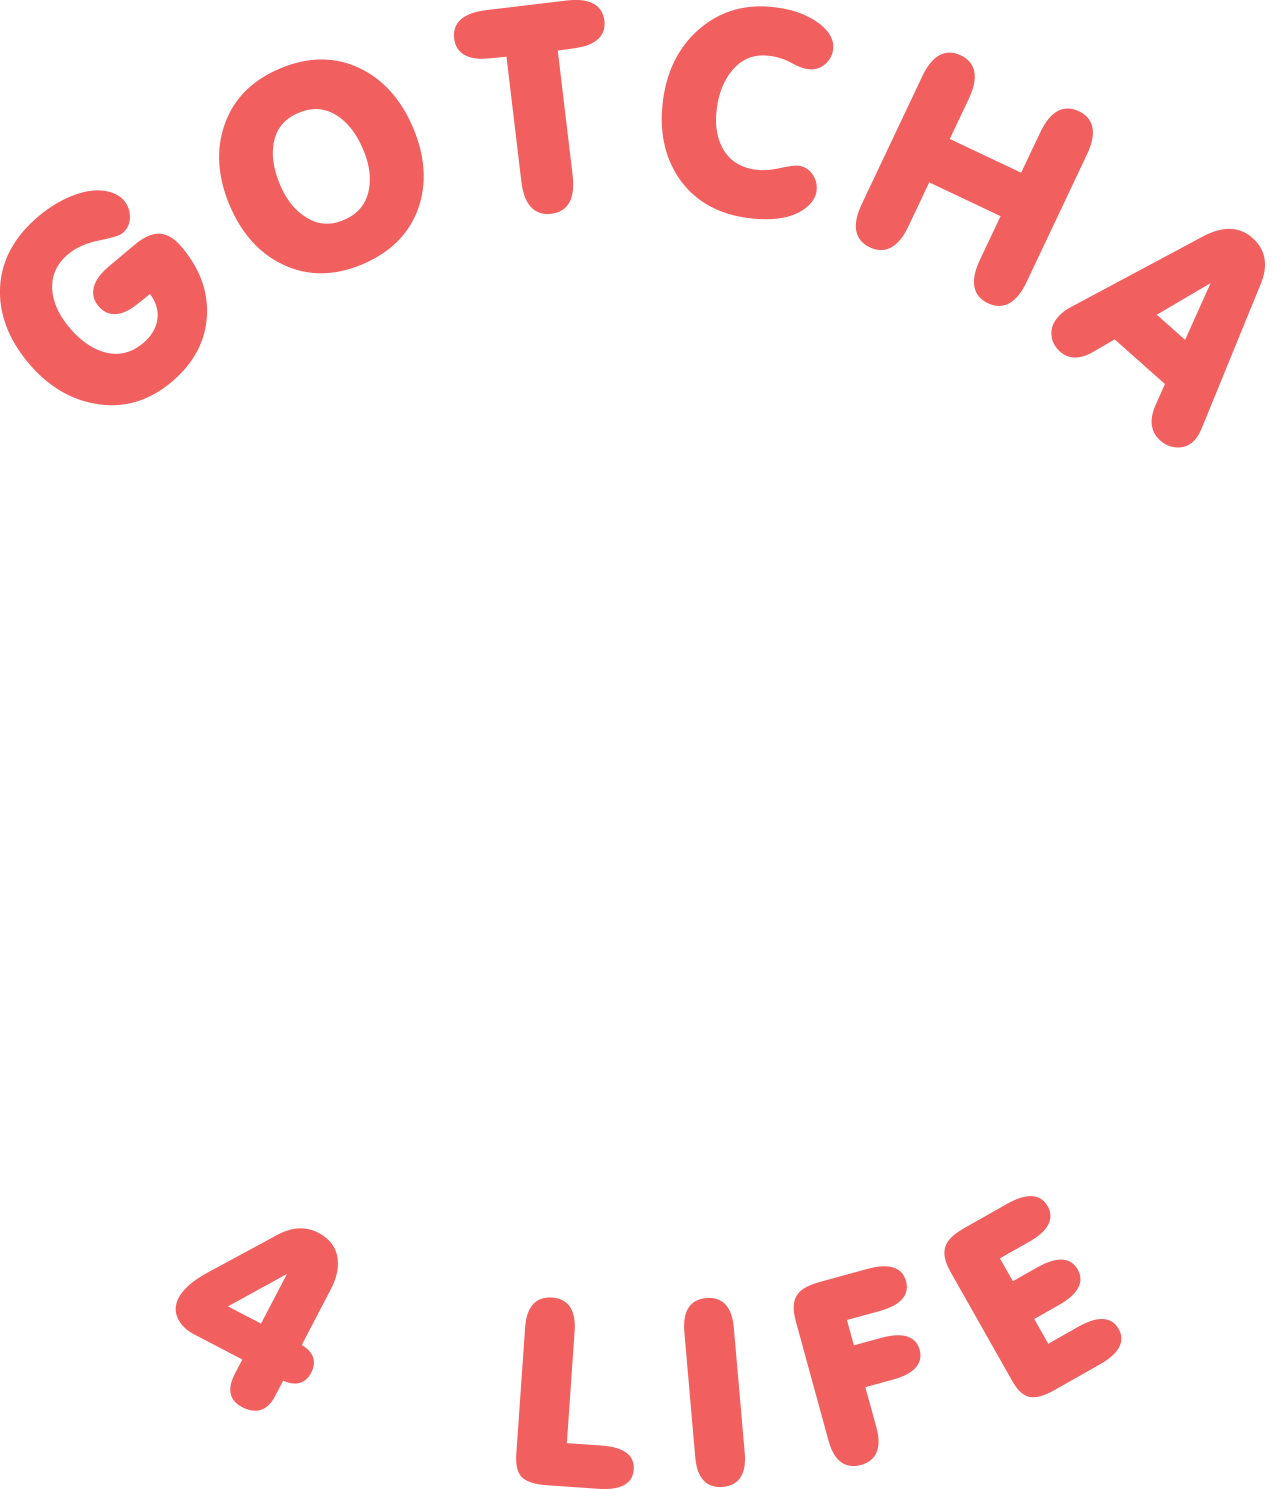 Gotcha4Life - helping save the lives of males by creating social change to improve the mental health of males.